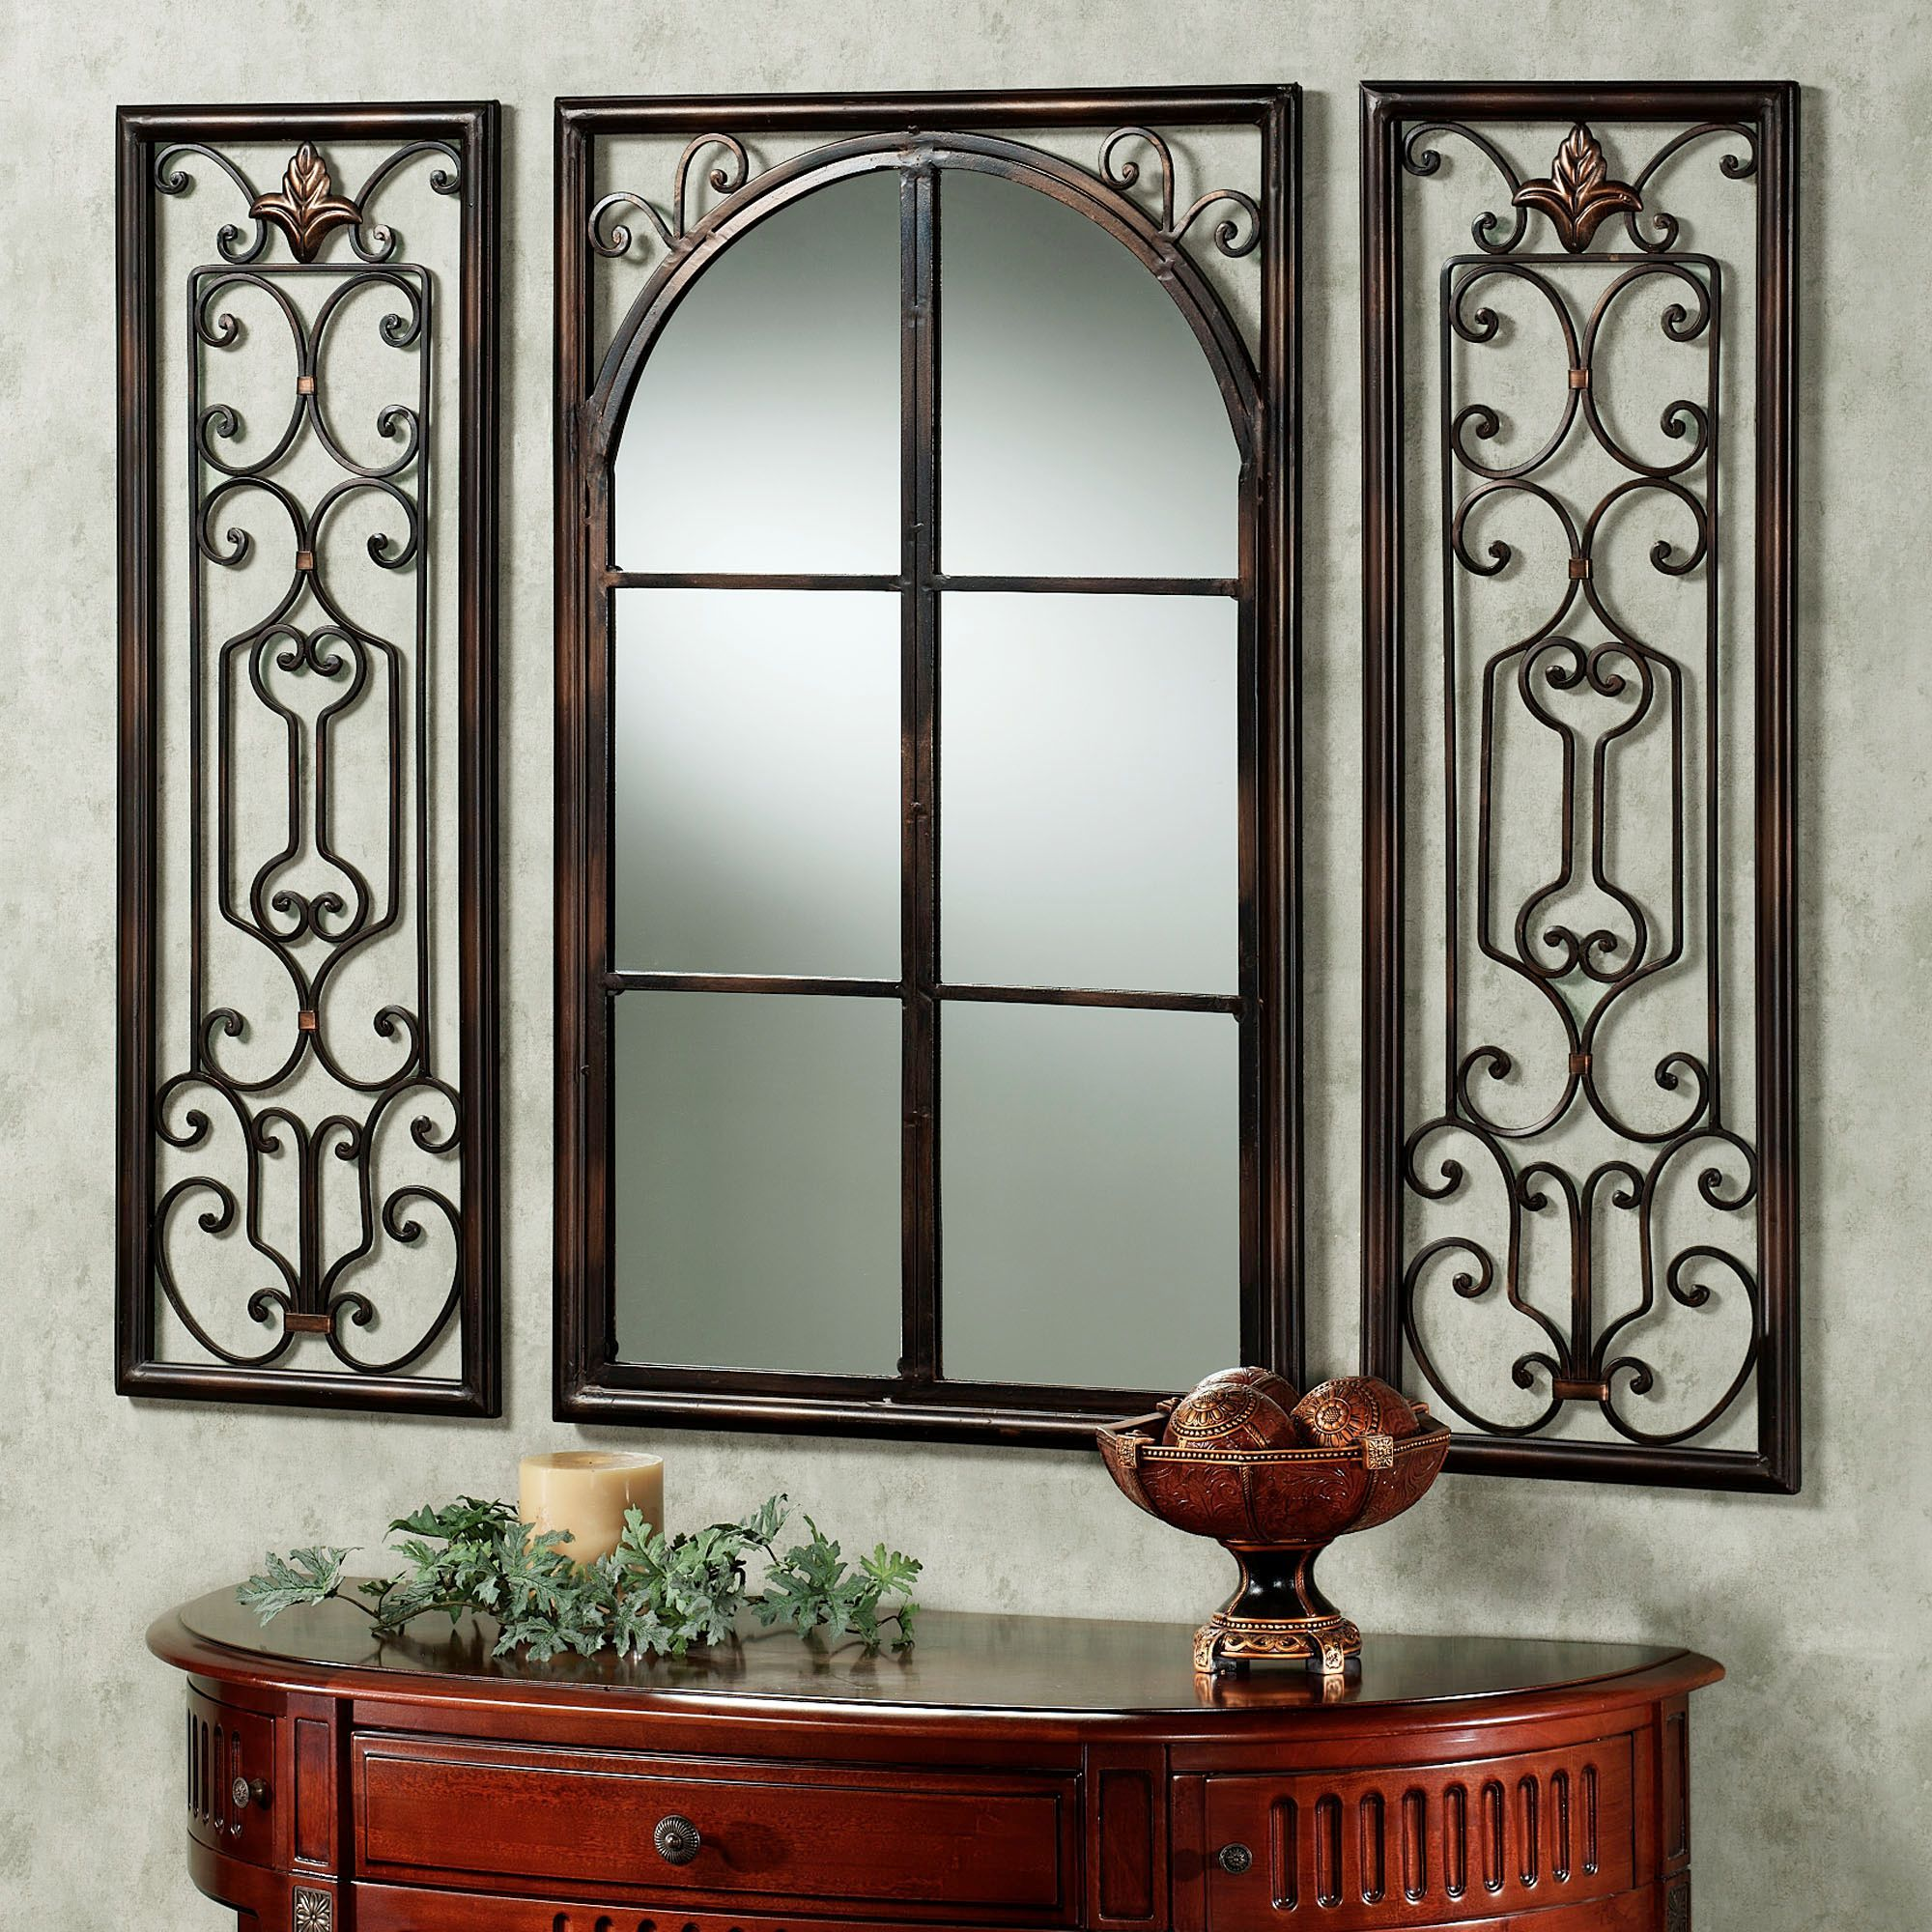 Wall Mirror Decor Provence Bronze Finish Wall Mirror Set Shopping For